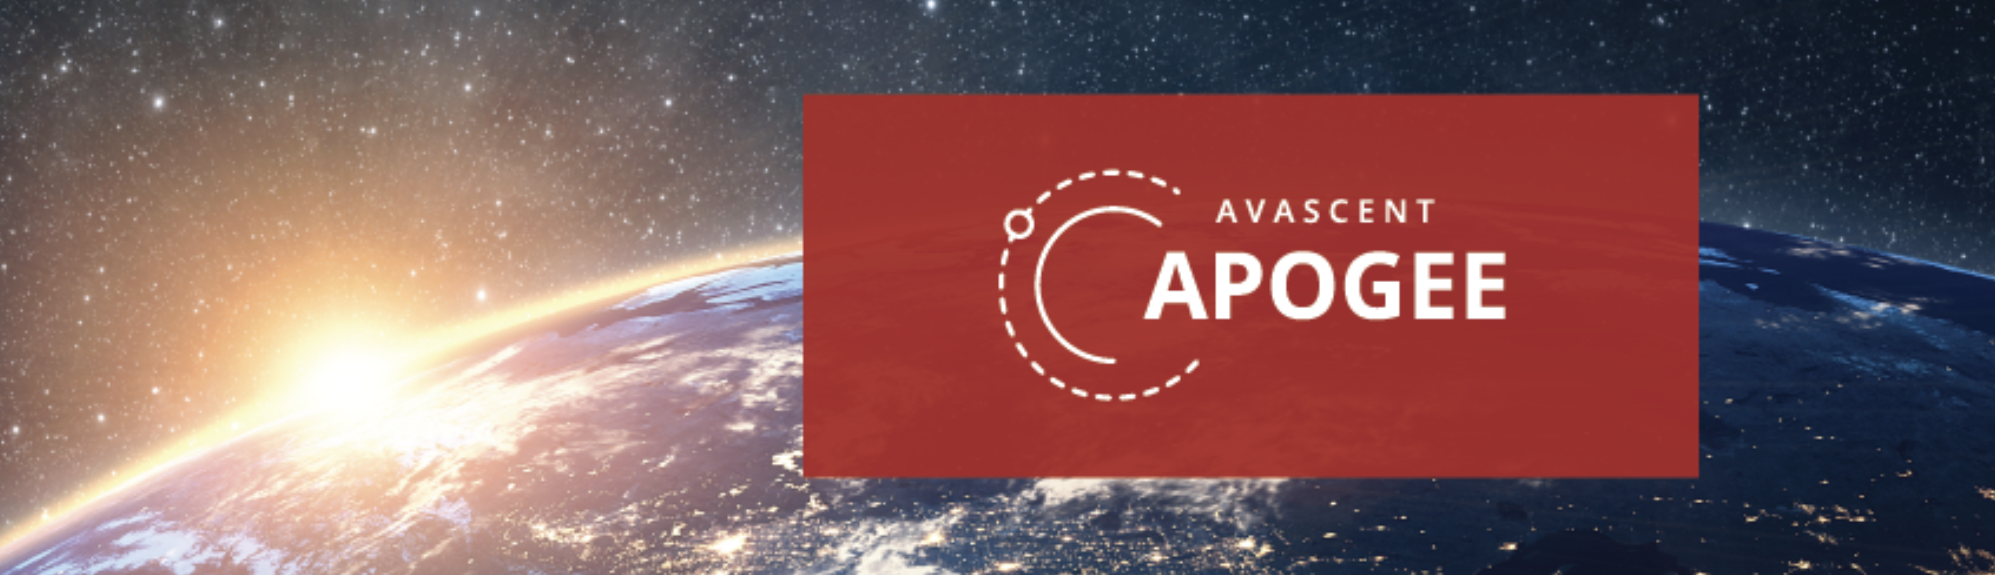 Horizon Technologies featured in AVASCENT Apogee